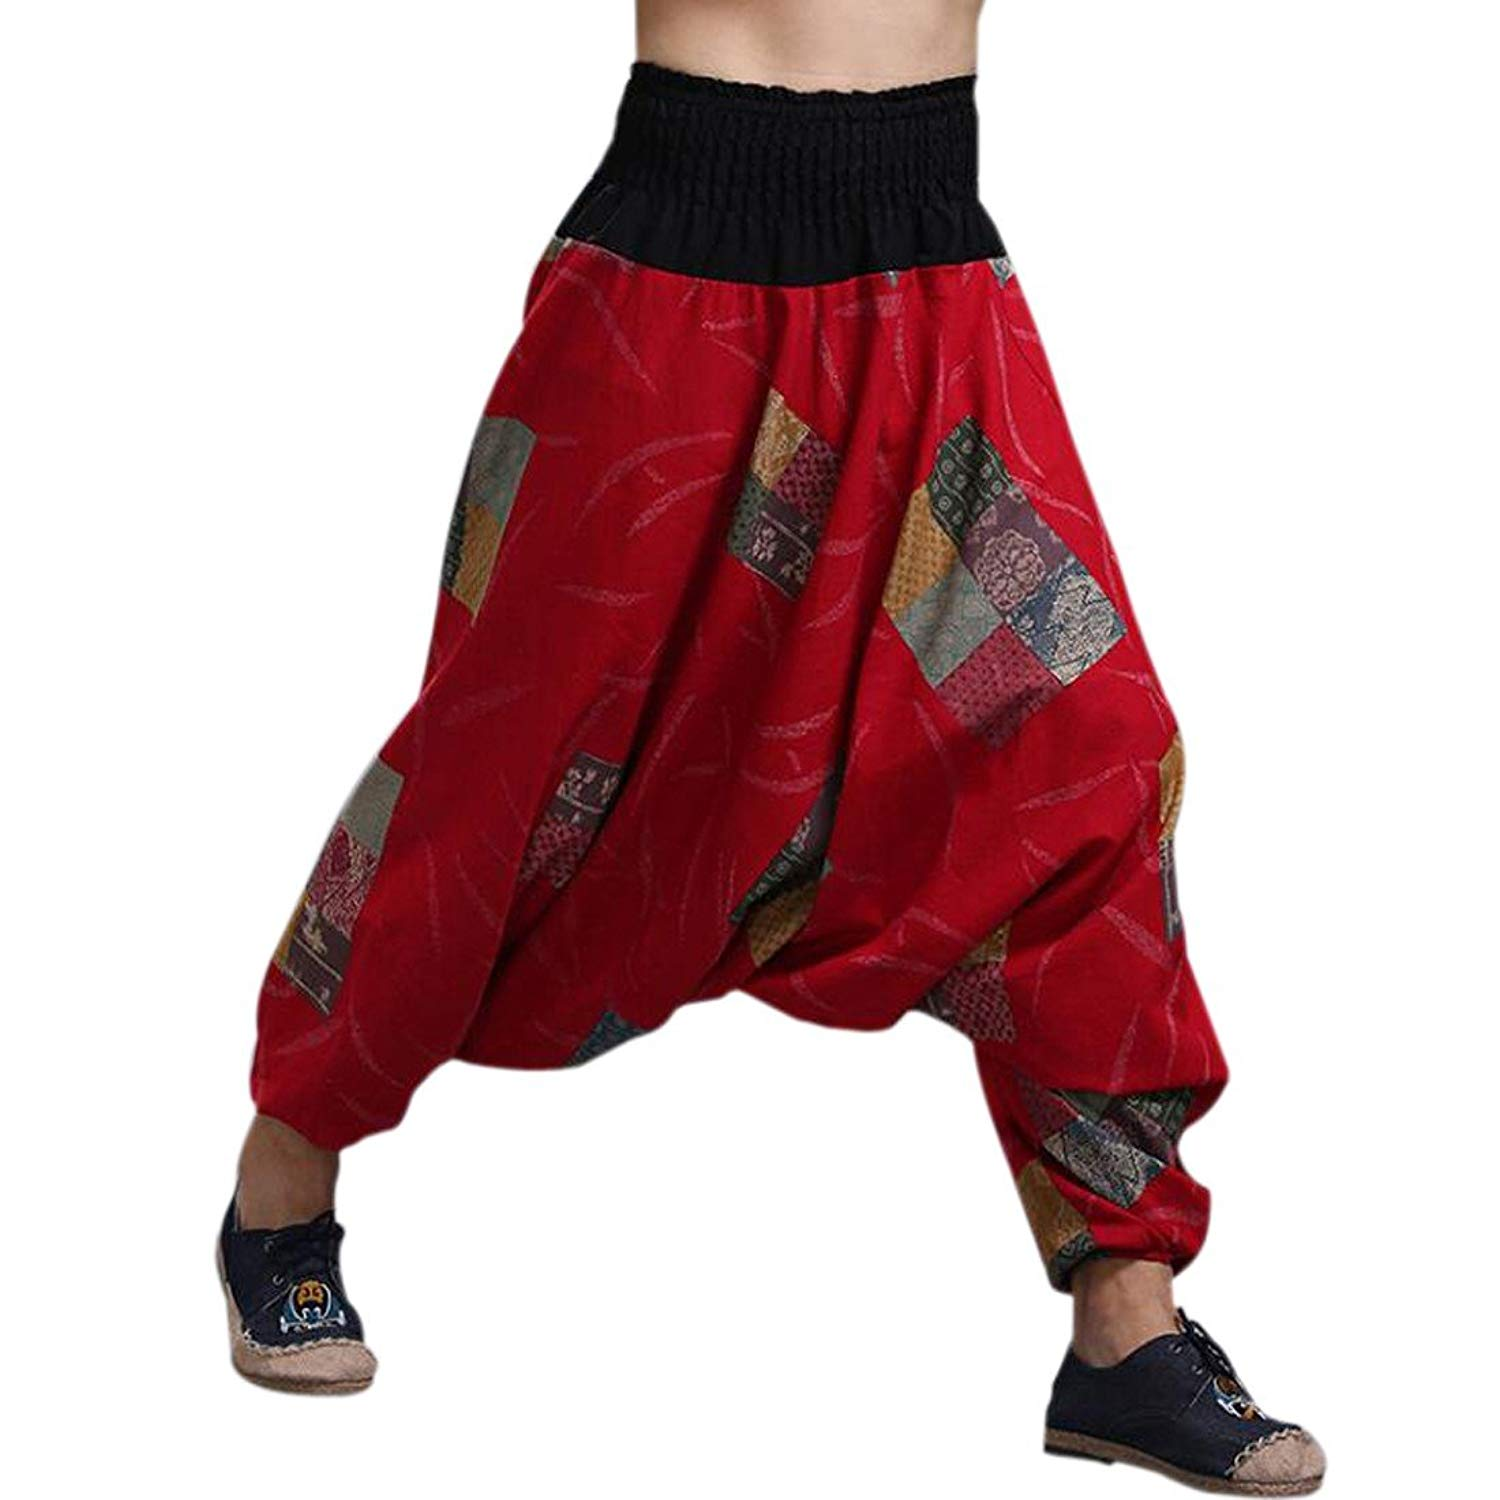 155fe96b44 Get Quotations · Mens Womens Boho Hippie Baggy Cotton Harem Pants with  Pockets Workout Yoga Pants